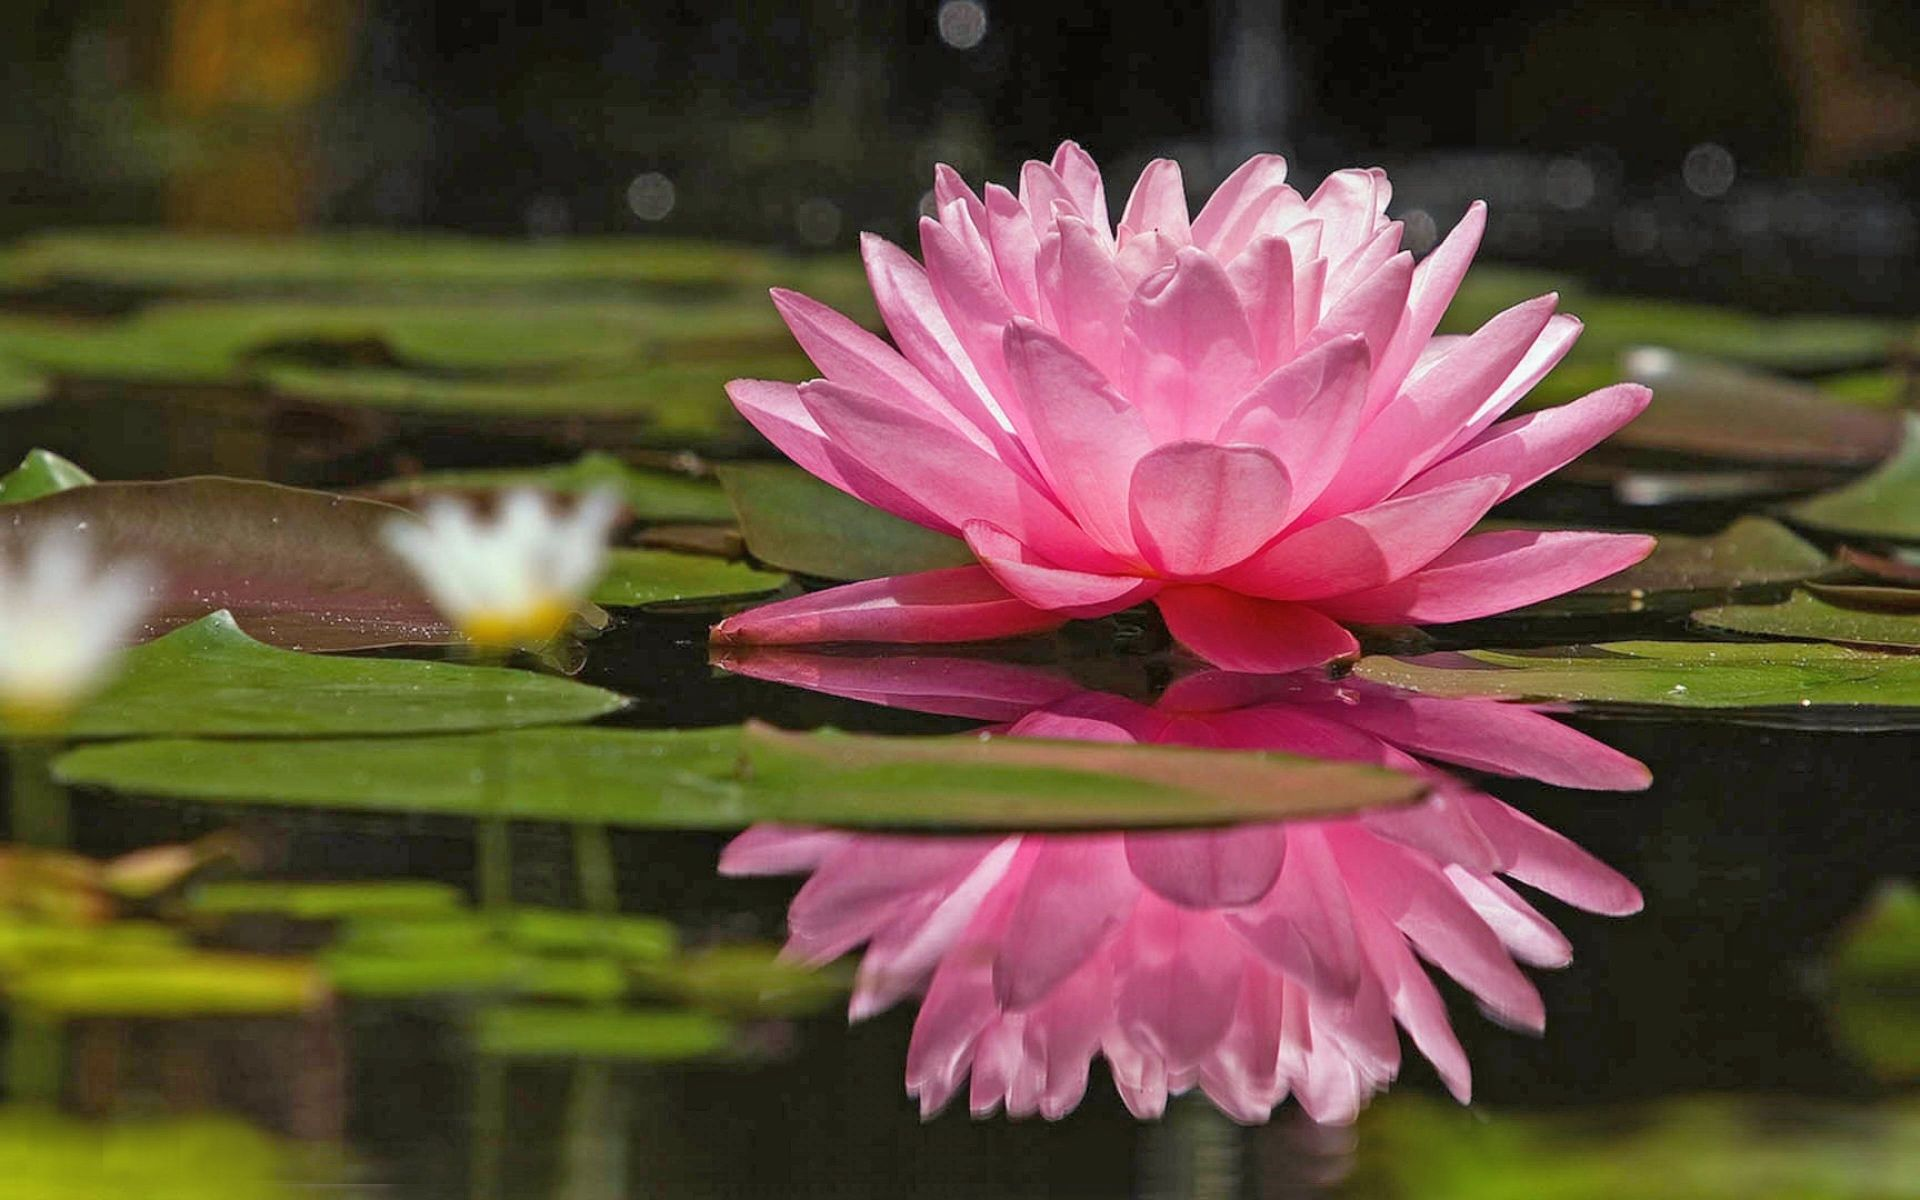 Earth water lily flower lily pink reflection pondfloater wallpaper earth water lily flower lily pink reflection pondfloater wallpaper dhlflorist Images